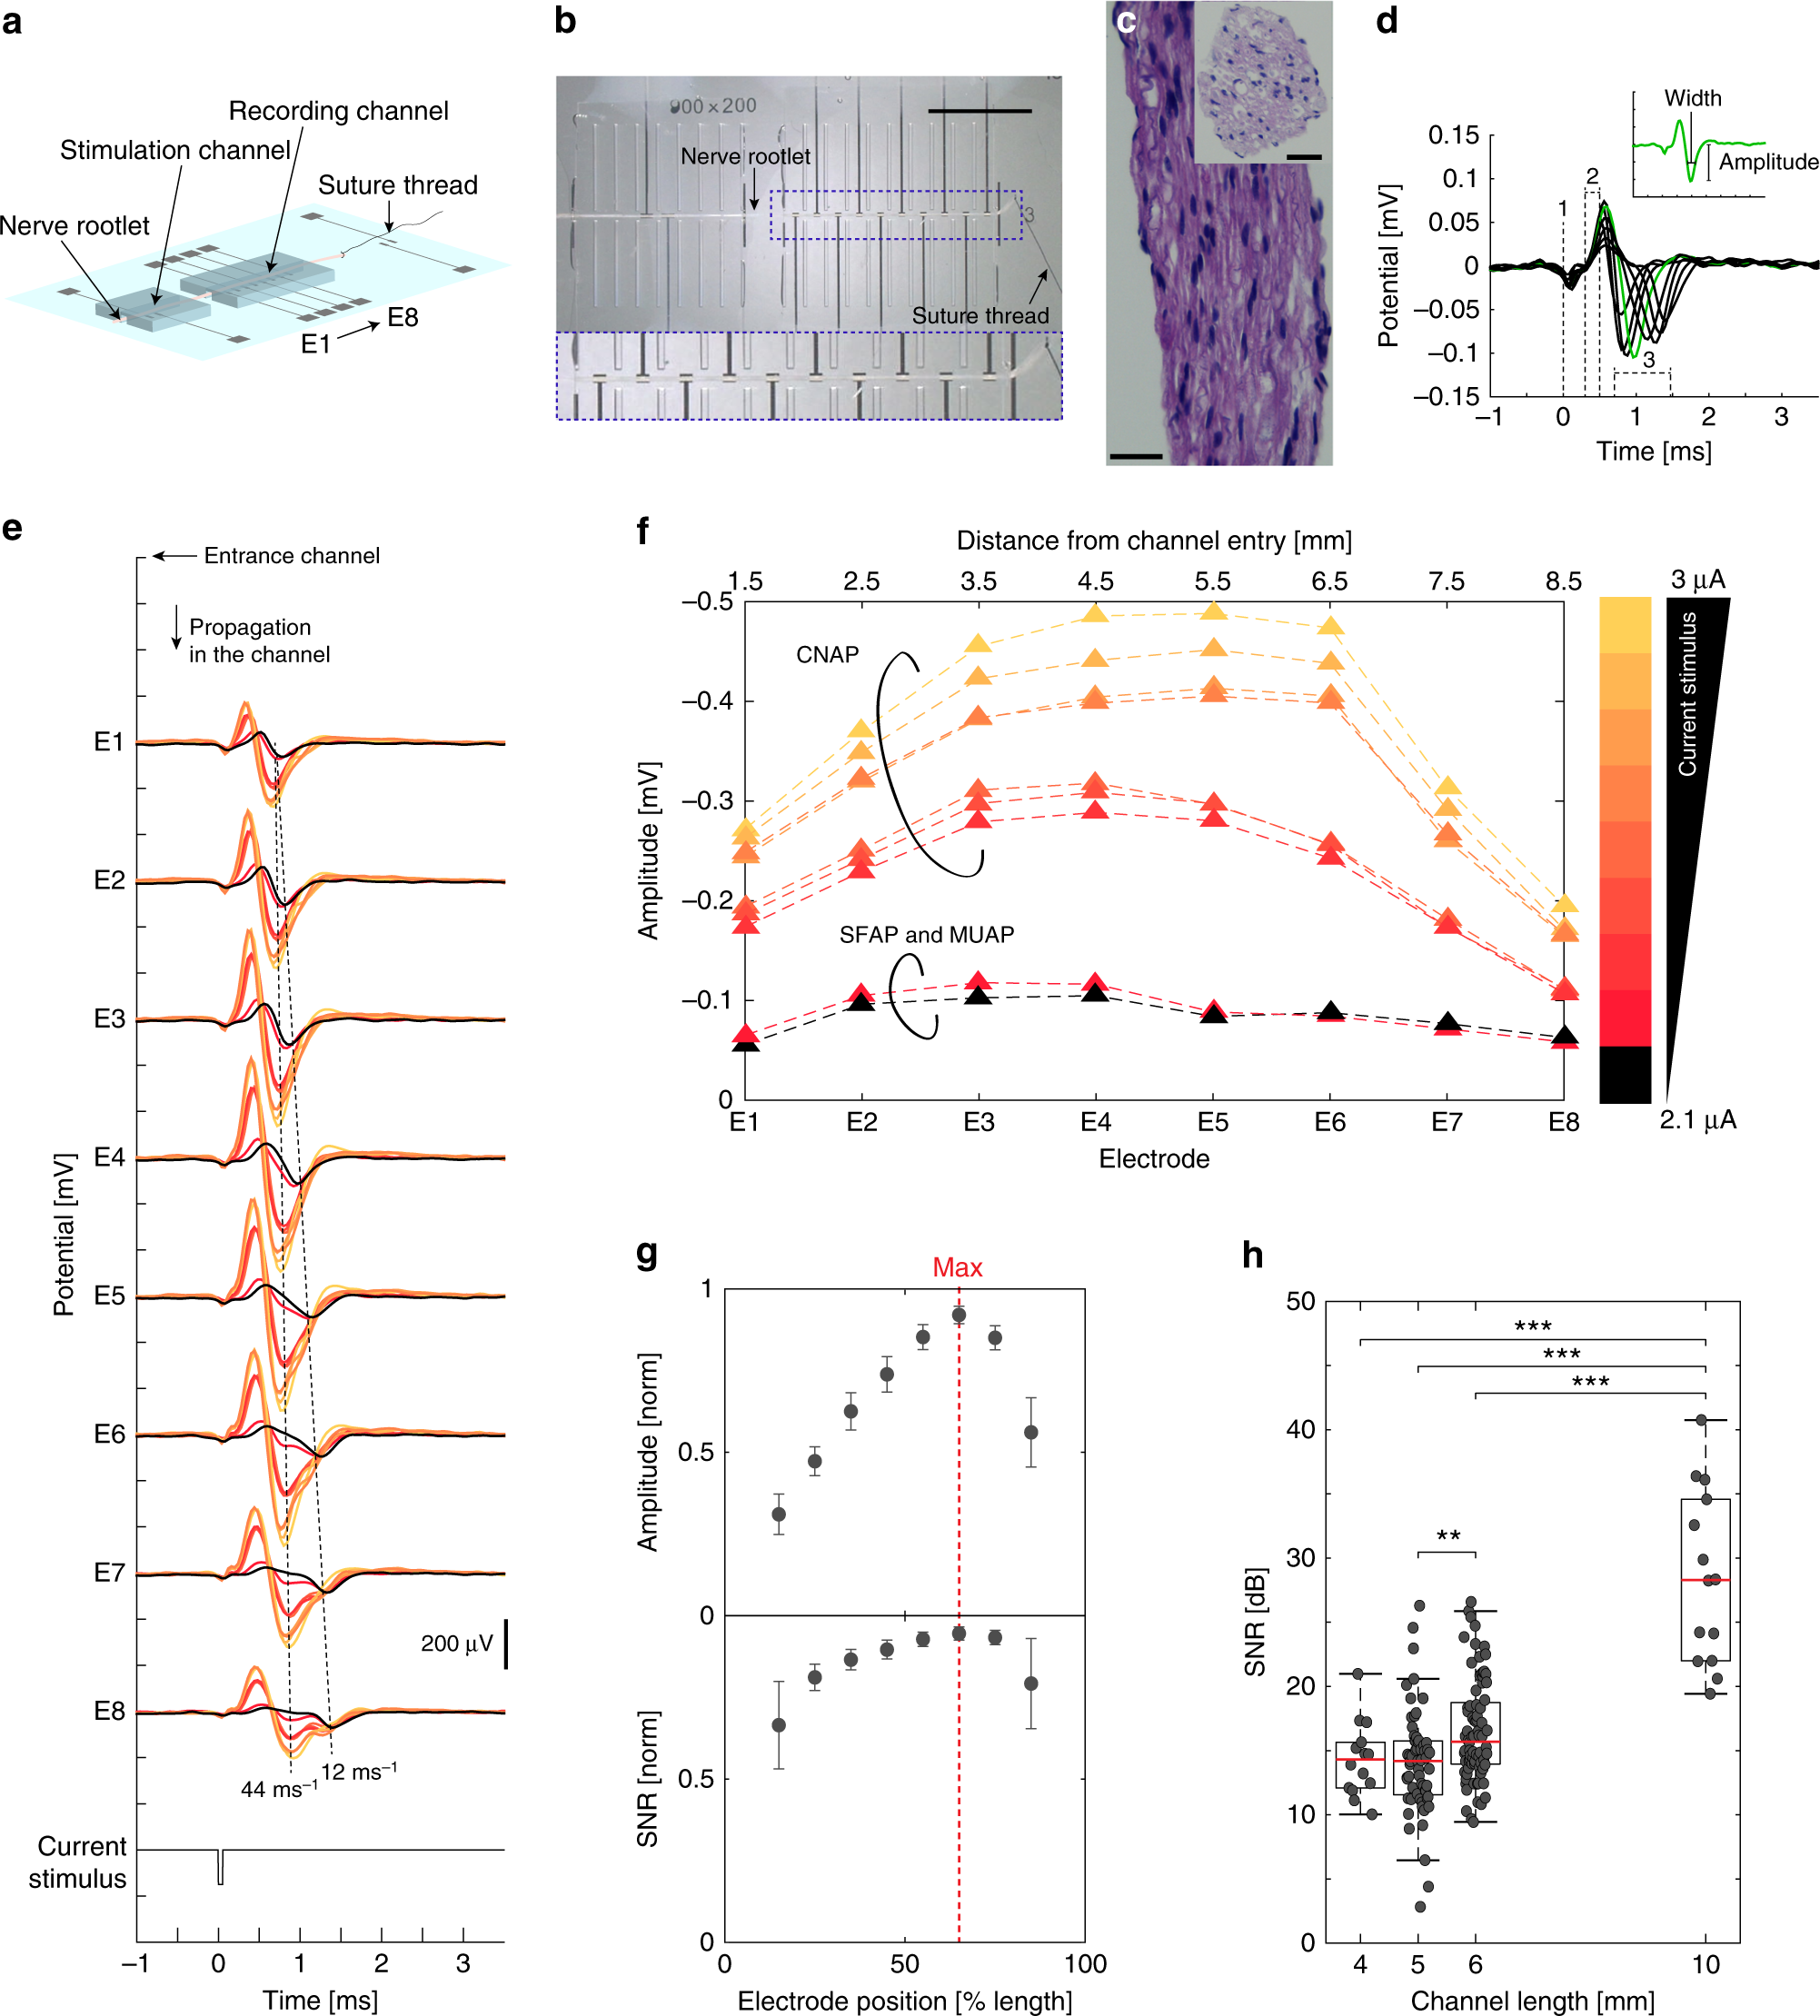 A Microfabricated Nerve On Chip Platform For Rapid Assessment Of C61 Wiring Diagram Neural Conduction In Explanted Peripheral Fibers Nature Communications